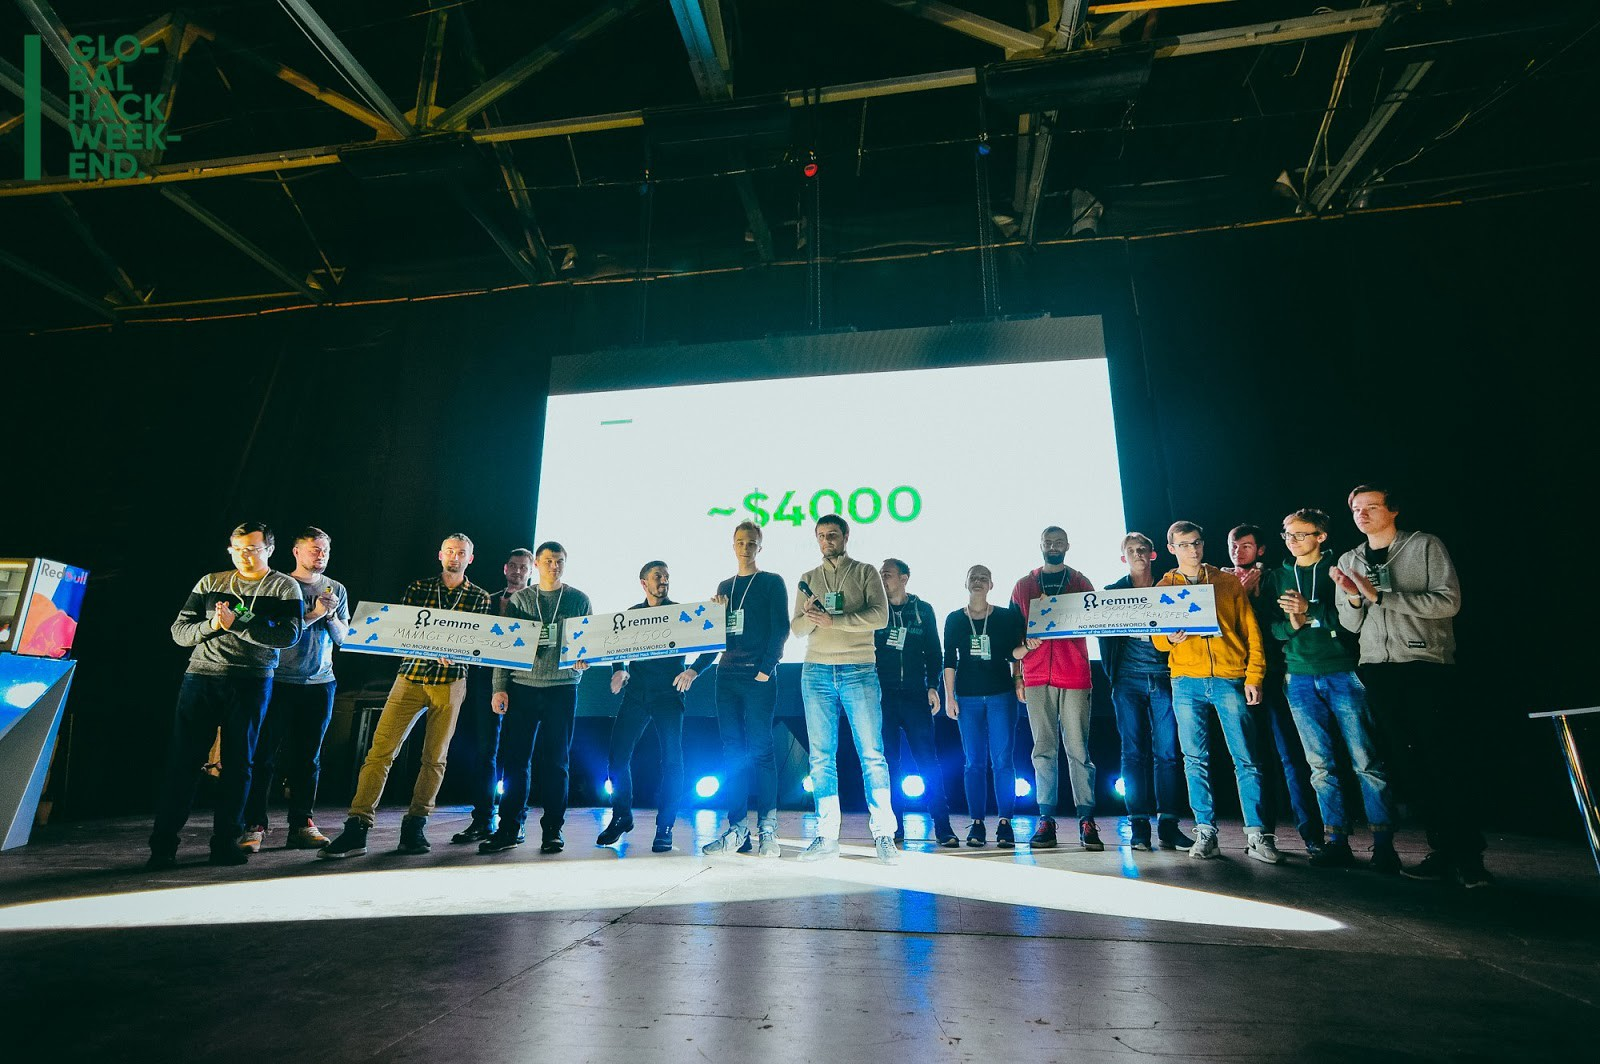 global hack weekend: remme proposed to guard intellectual property